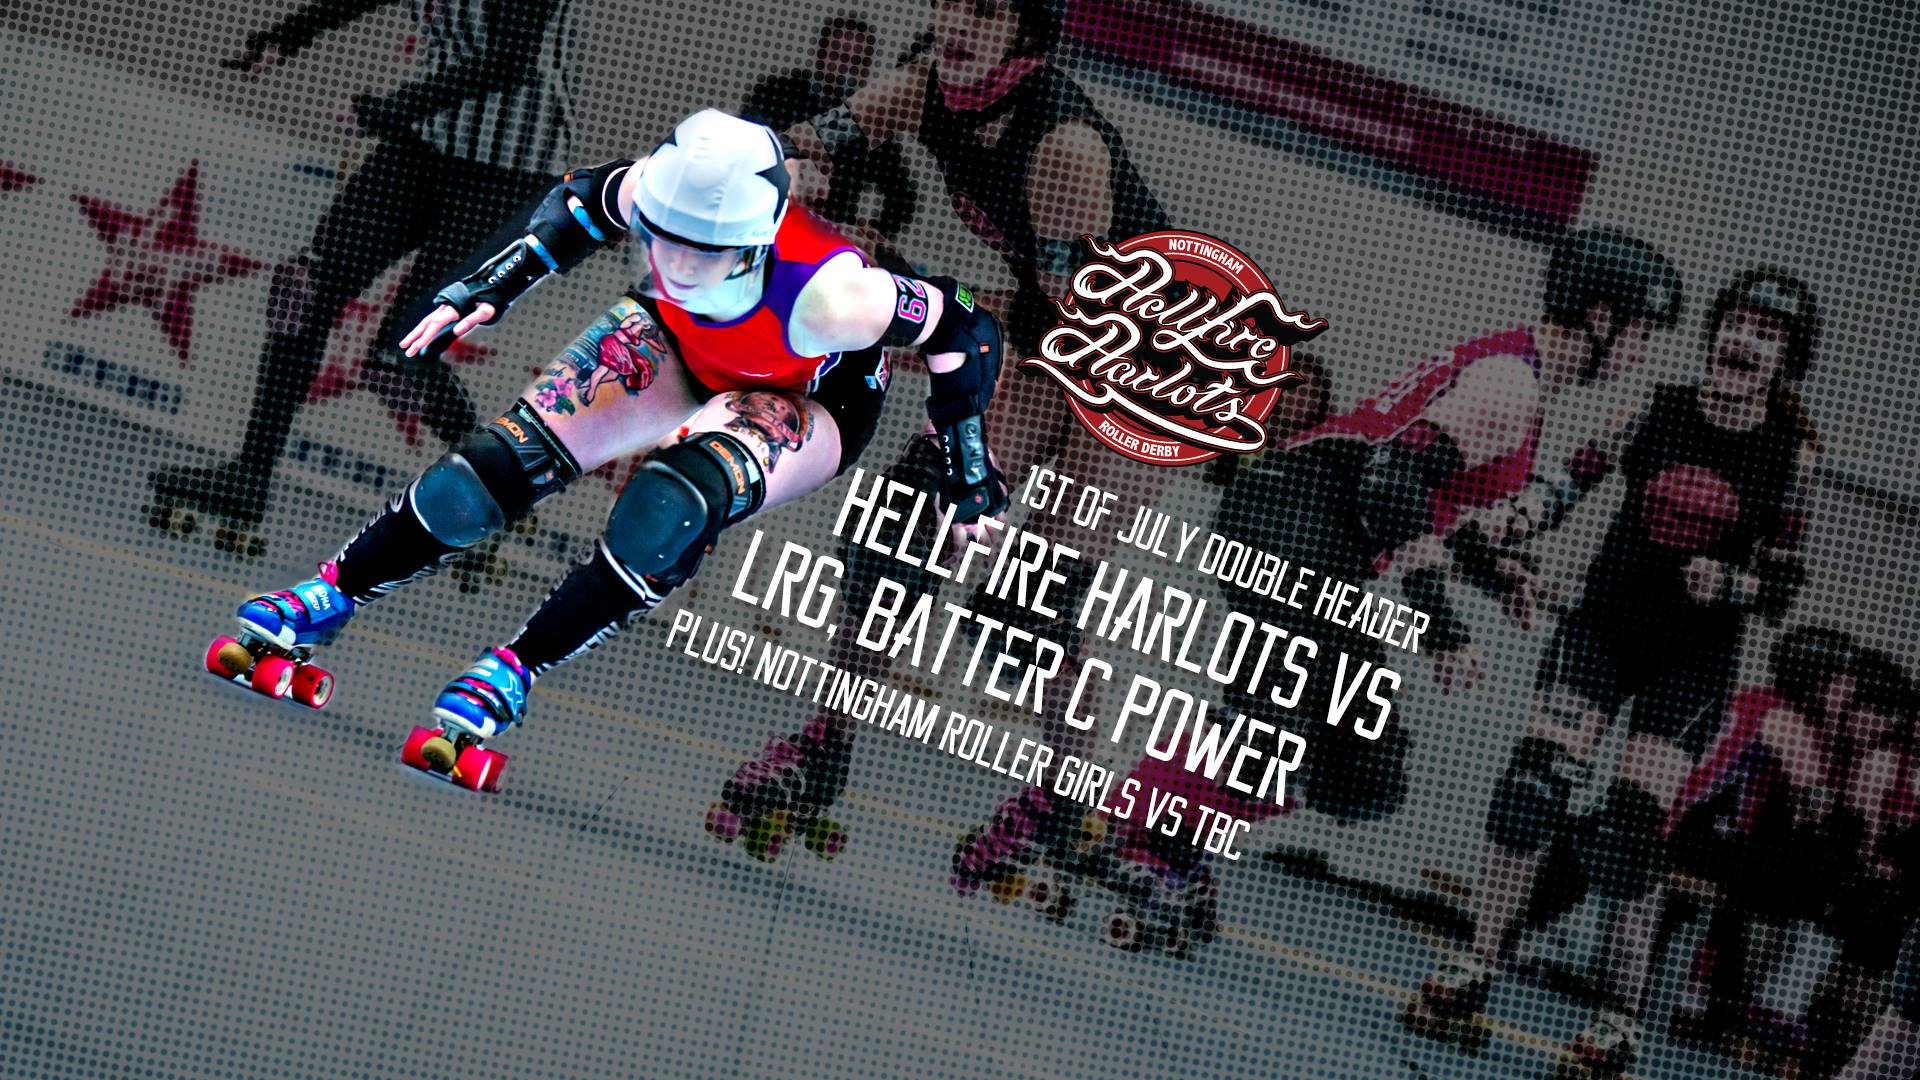 Hellfire Harlots vs London Roller Girls Batter C Power